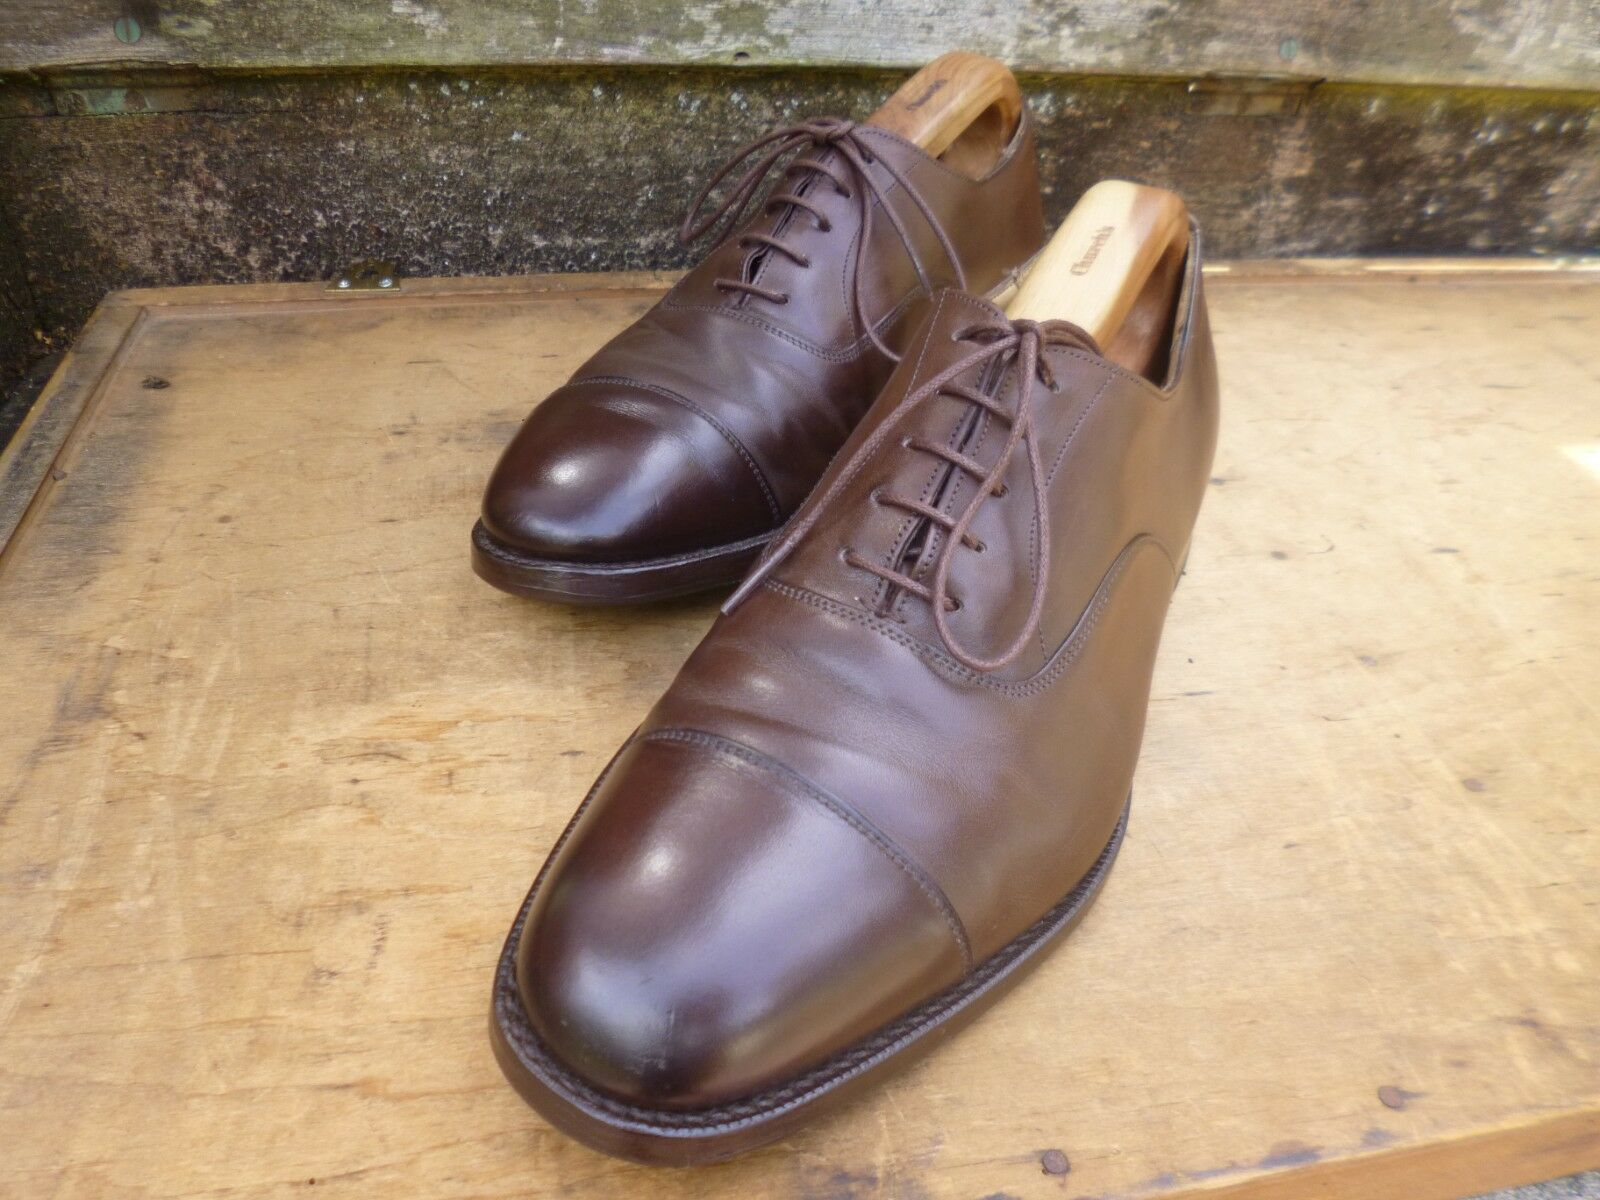 CHURCH OXFORD – braun - UK 8.5 – CONSUL - EXCELLENT CONDITION    | Online Outlet Store